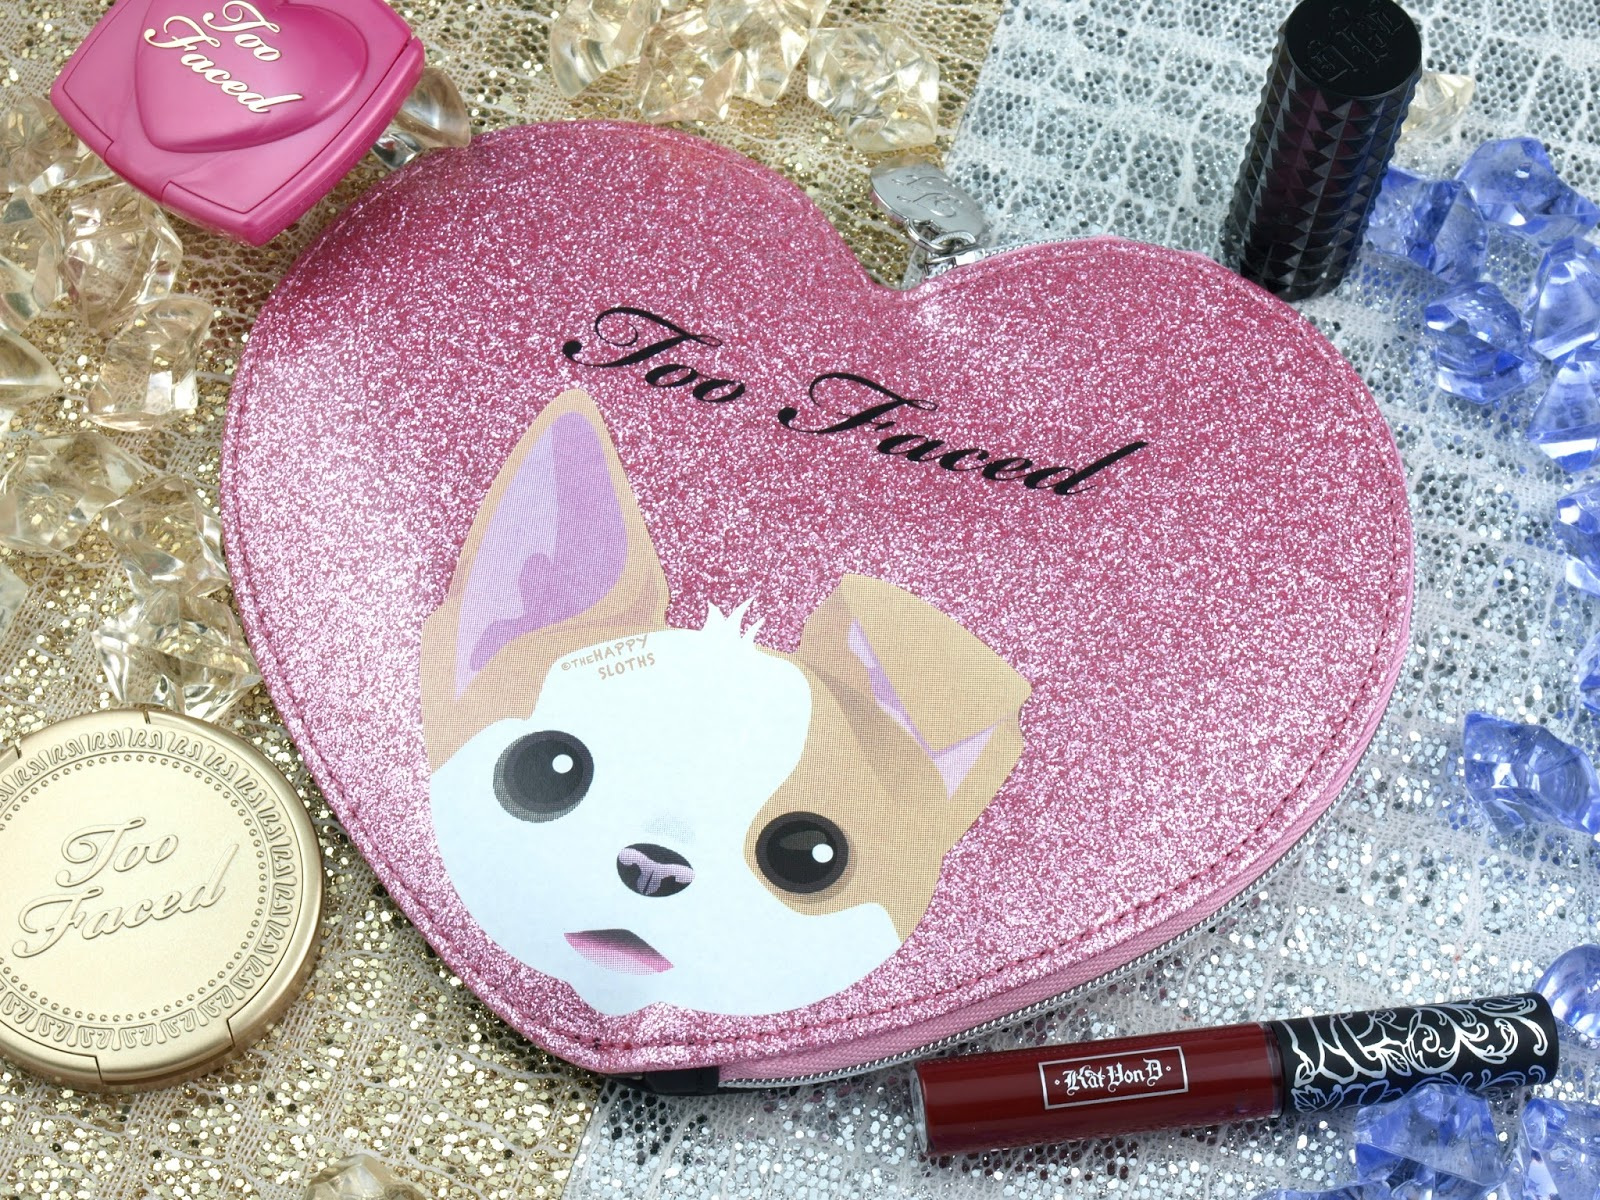 Too Faced x Kat Von D Cheek & Lip Makeup Bag Set: Review and Swatches